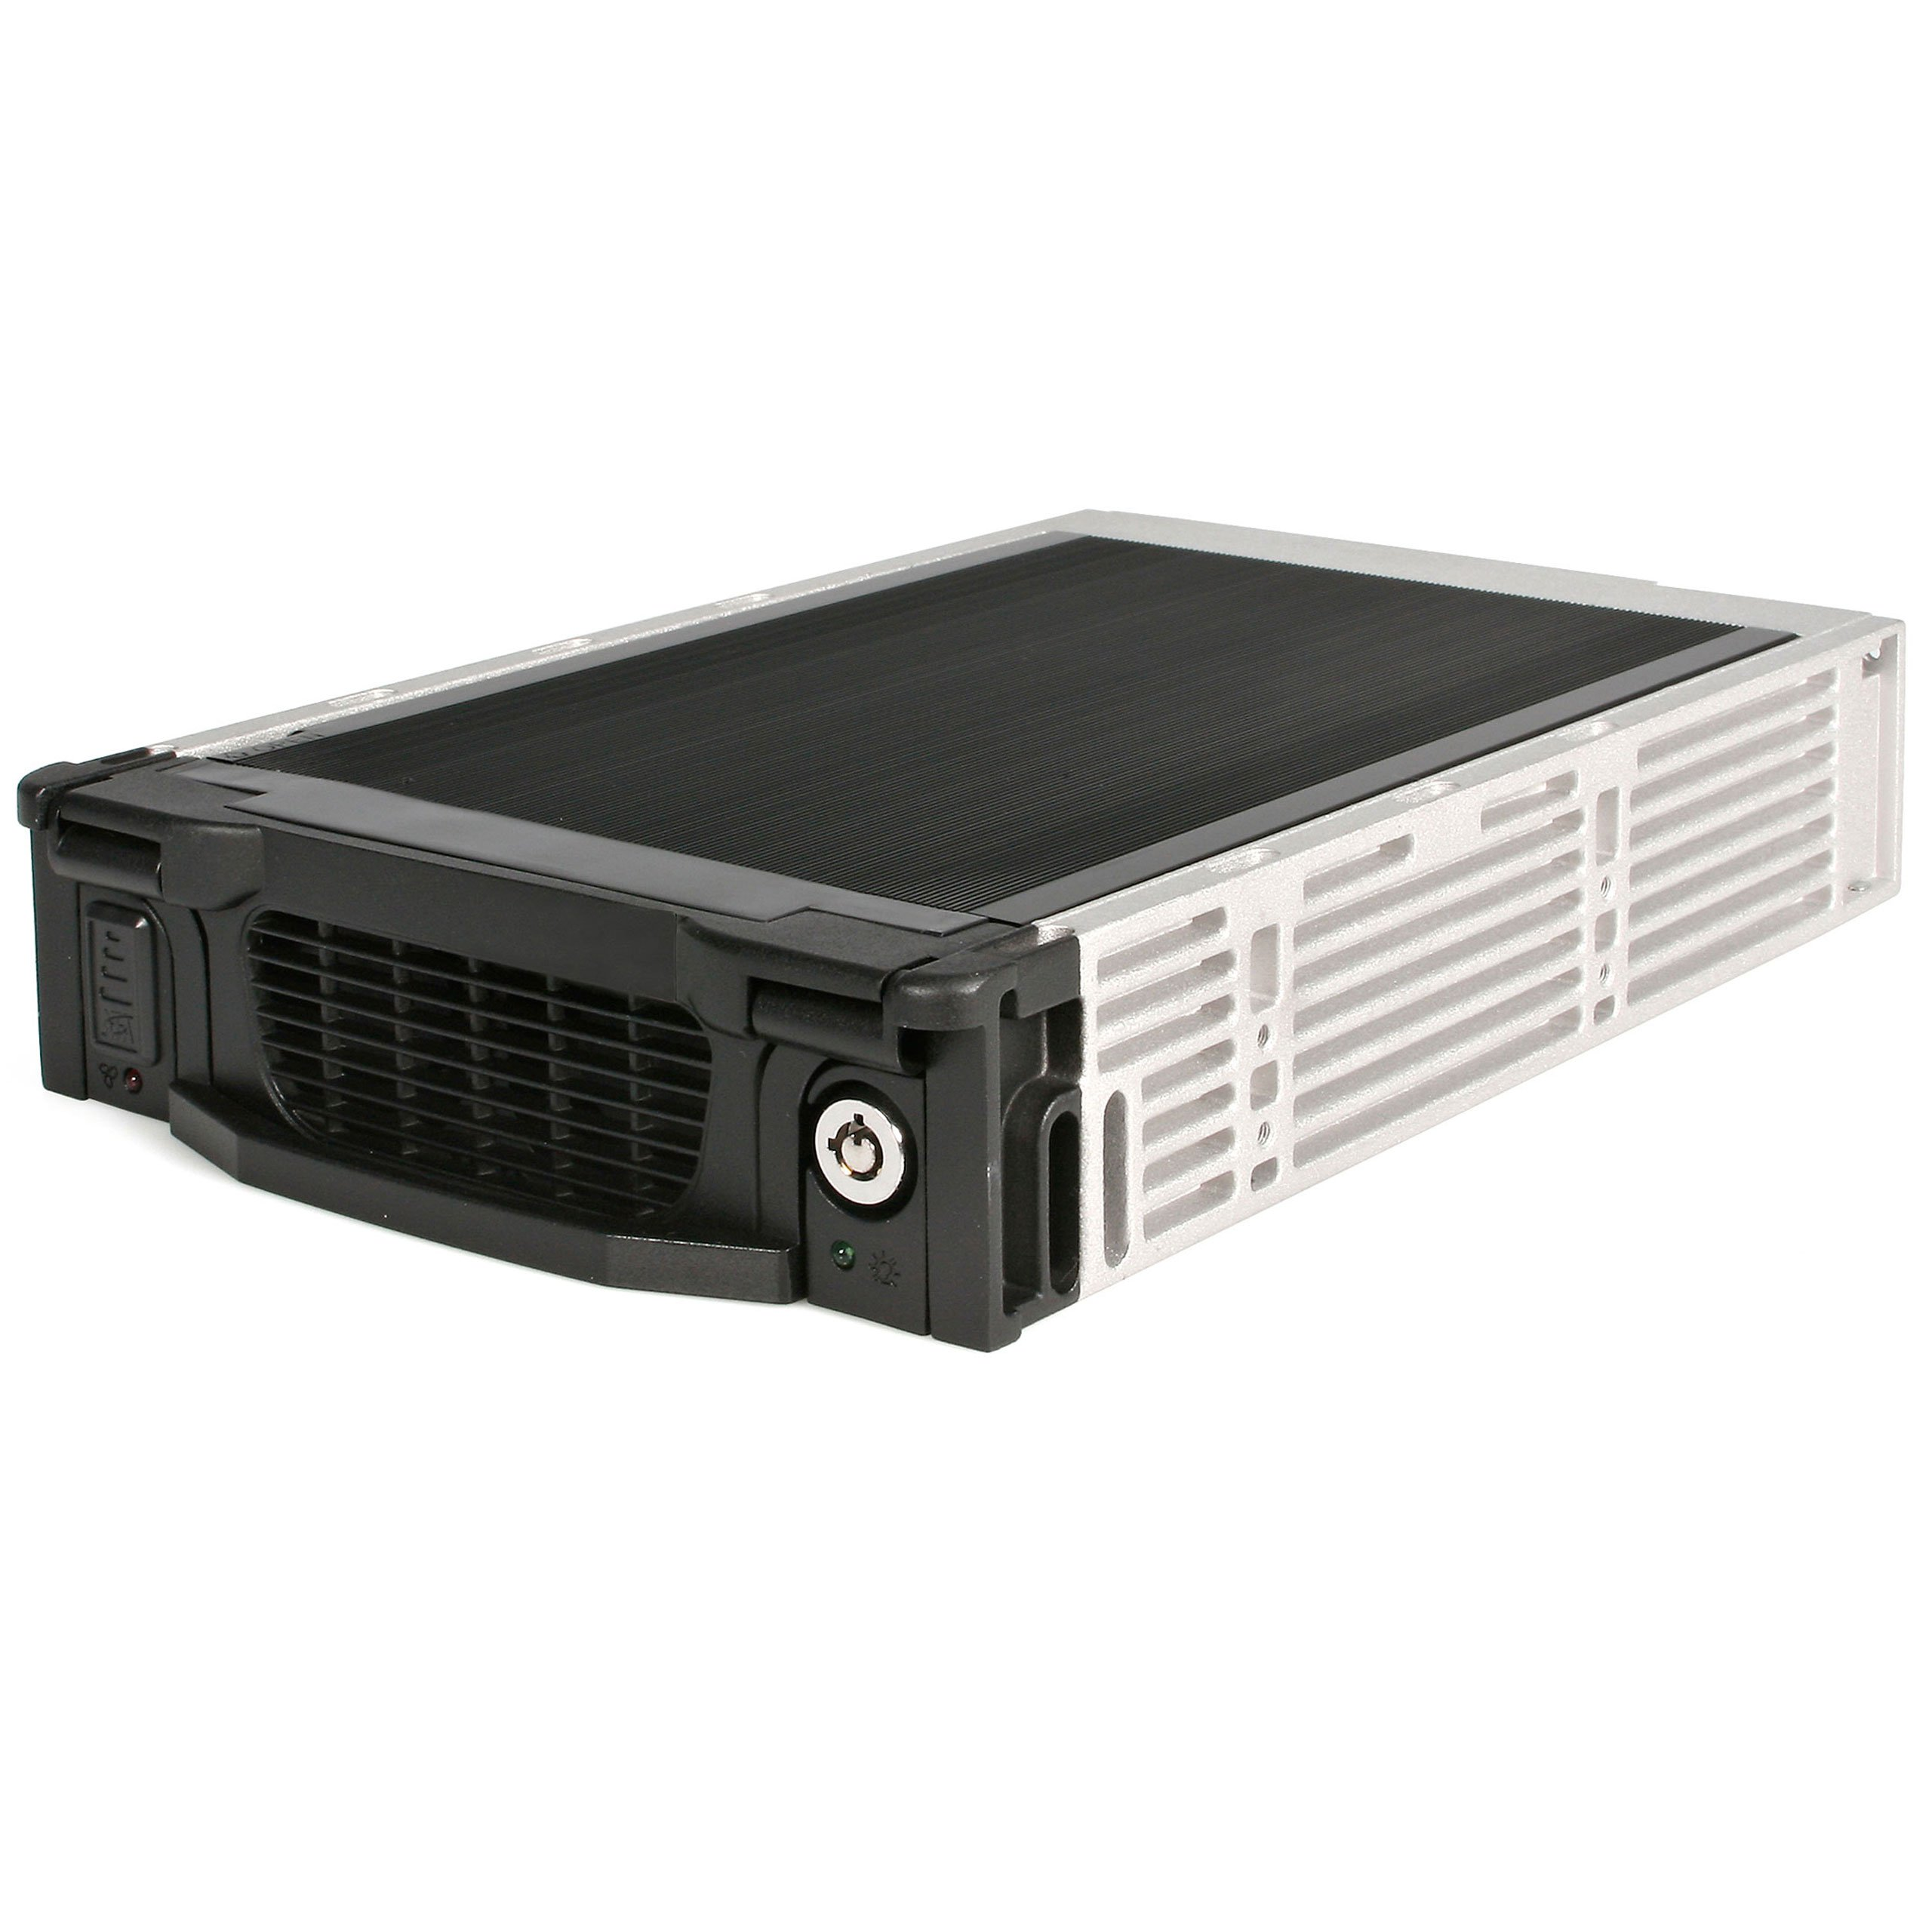 StarTech.com Black Aluminum 5.25in Professional SATA Hard Drive Mobile Rack Drawer by StarTech